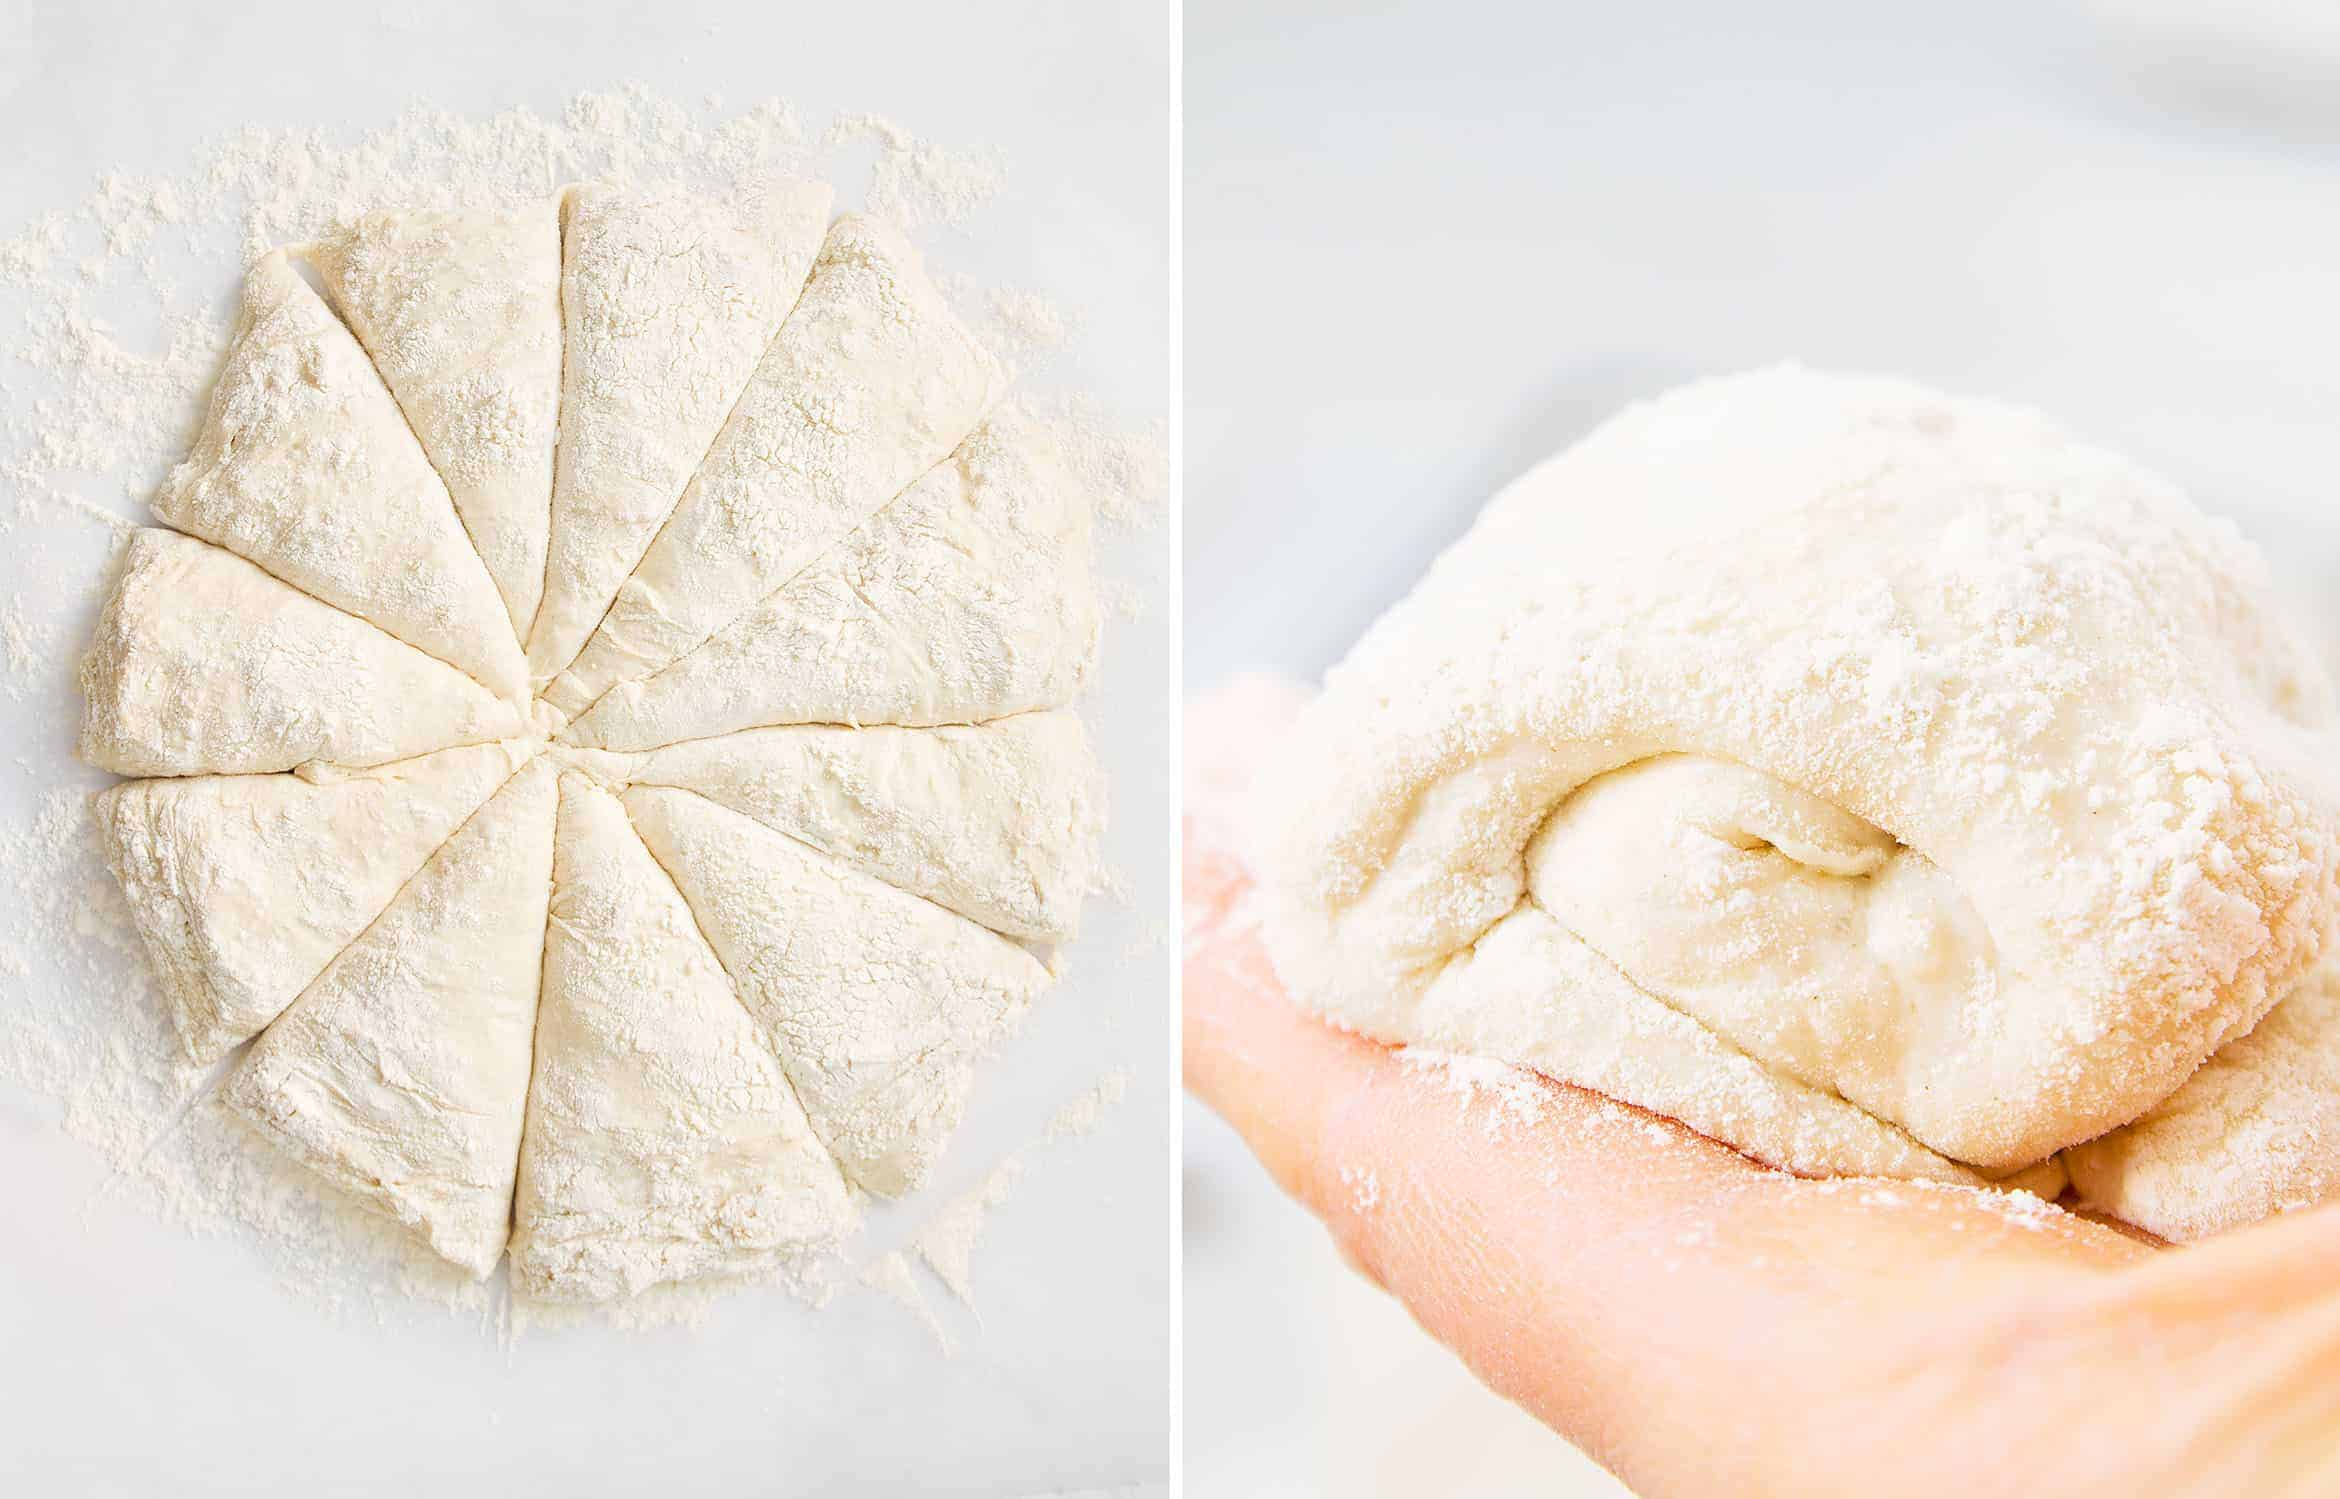 How to make panini bread: cut the dough into 10 portions, then roll out each portion.